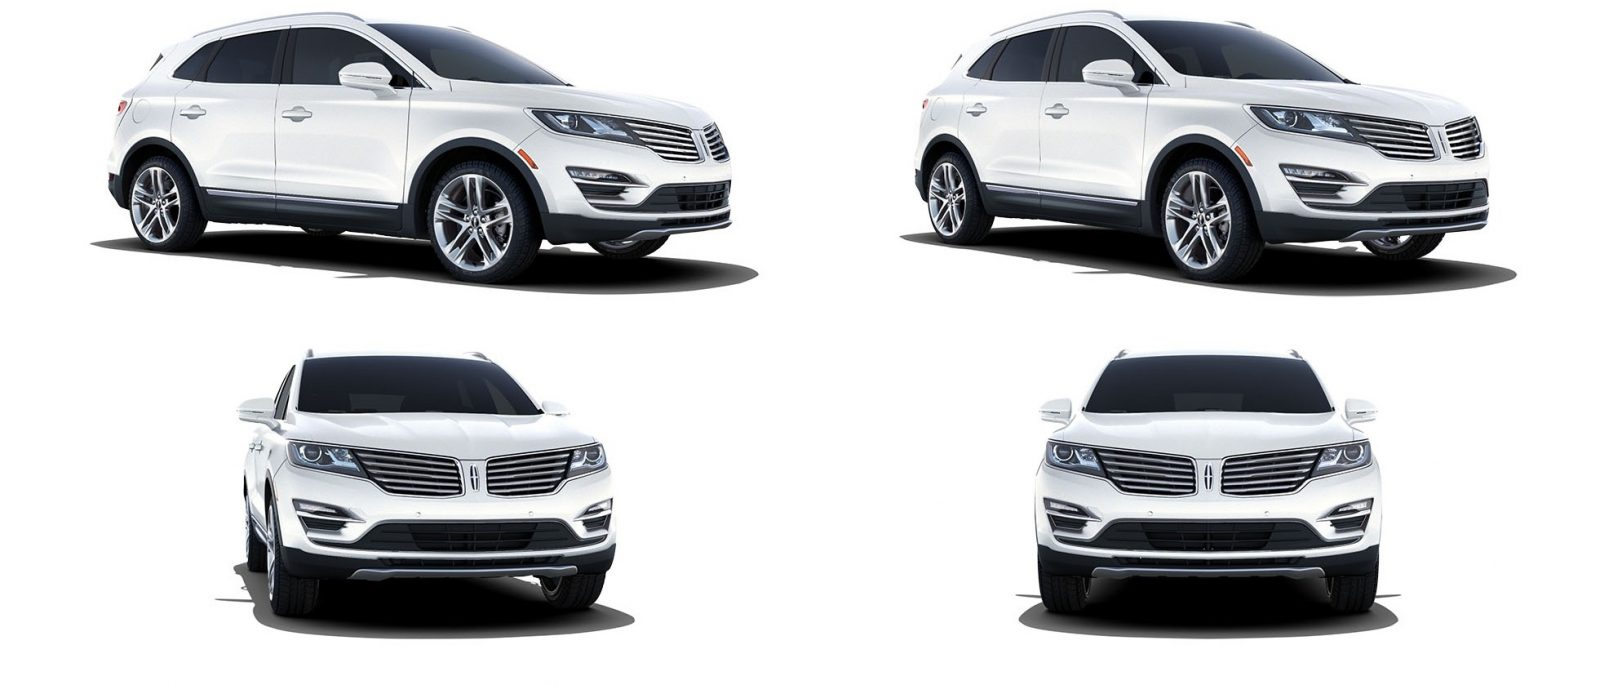 2015 Lincoln MKC Crossover - A Cool Mix of Infiniti and Audi126